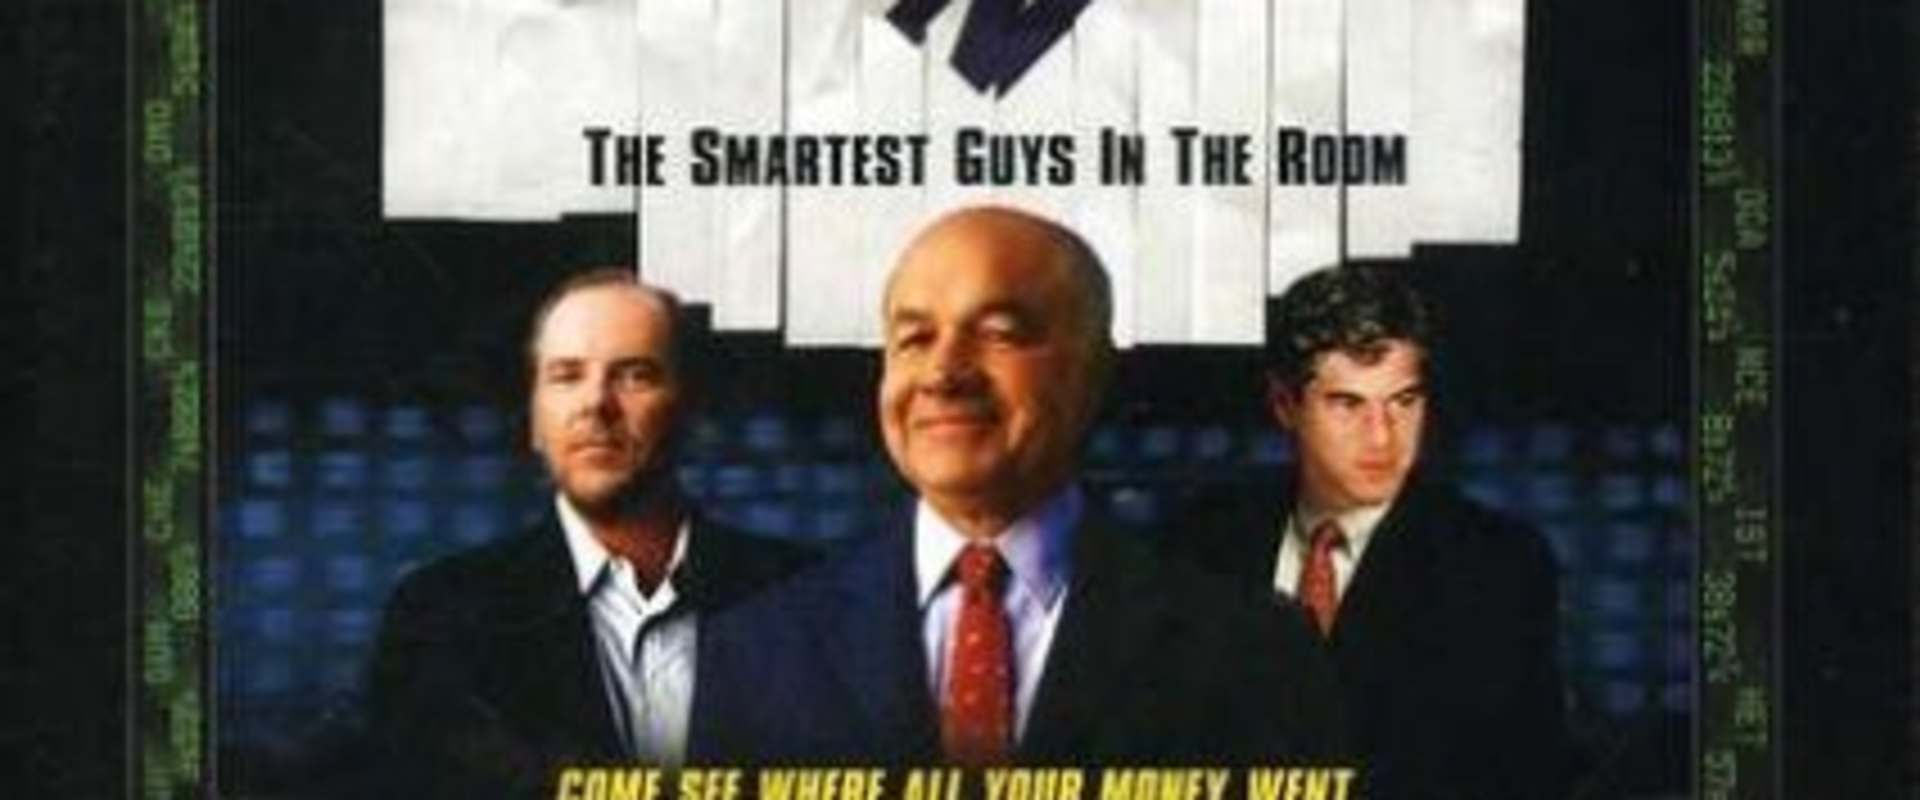 Watch Enron The Smartest Guys in the Room on Netflix